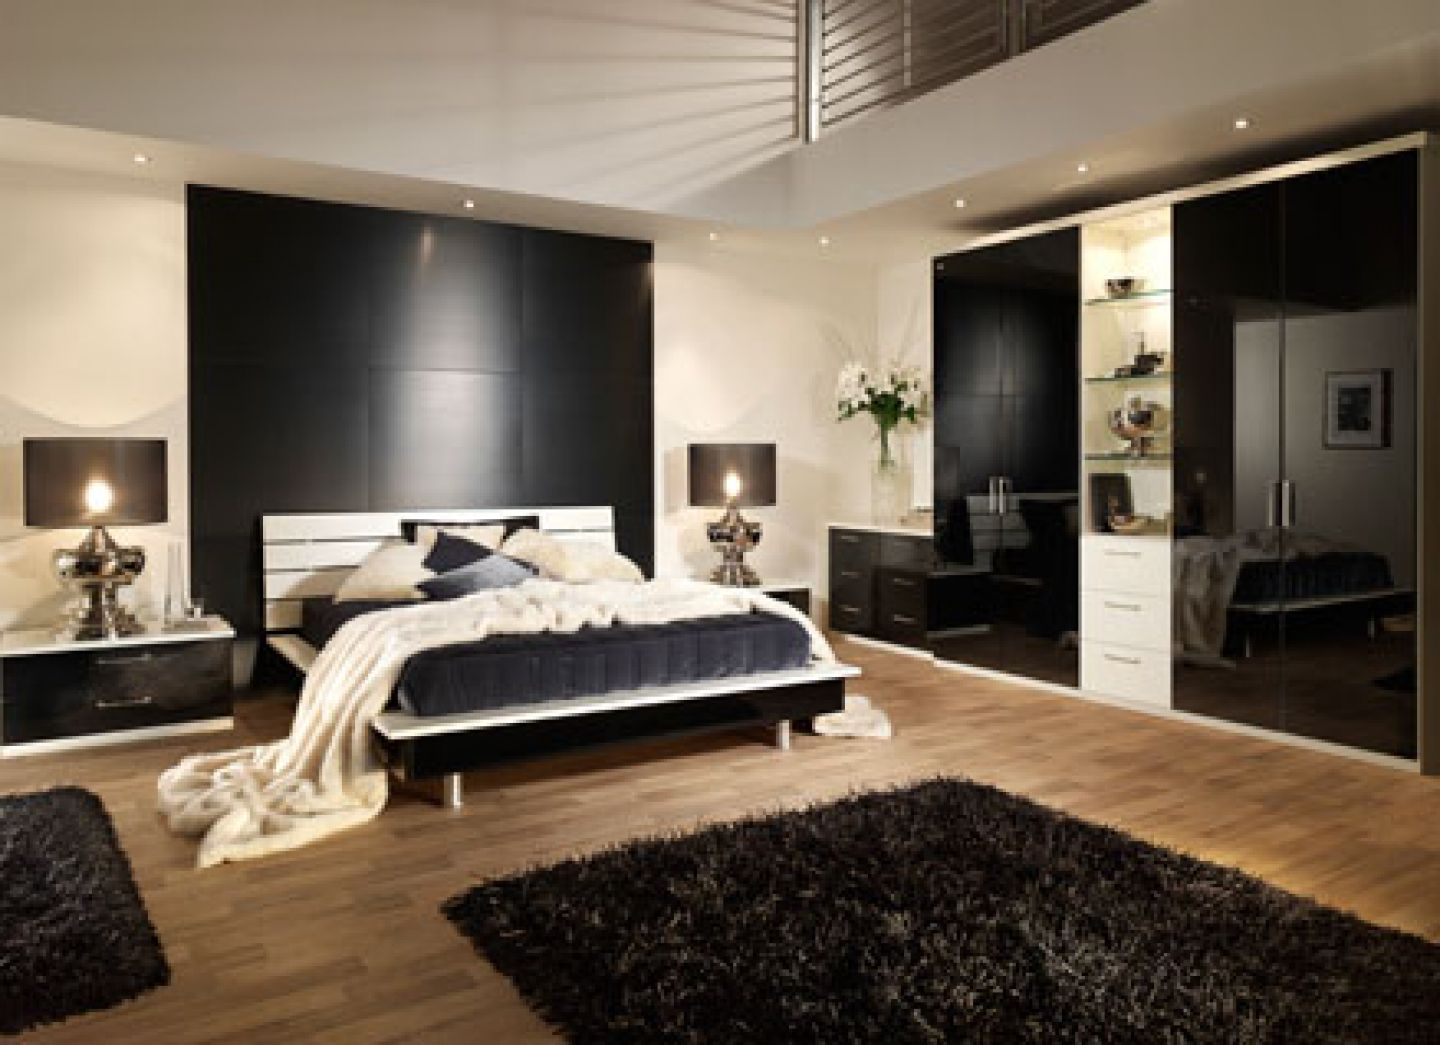 Charmant Black Contemporary Bedroom Furniture, Any House Consist Of Many Bedrooms At  Least 2 Bedrooms. Other Houses Have 5 Or 10 Bedrooms.